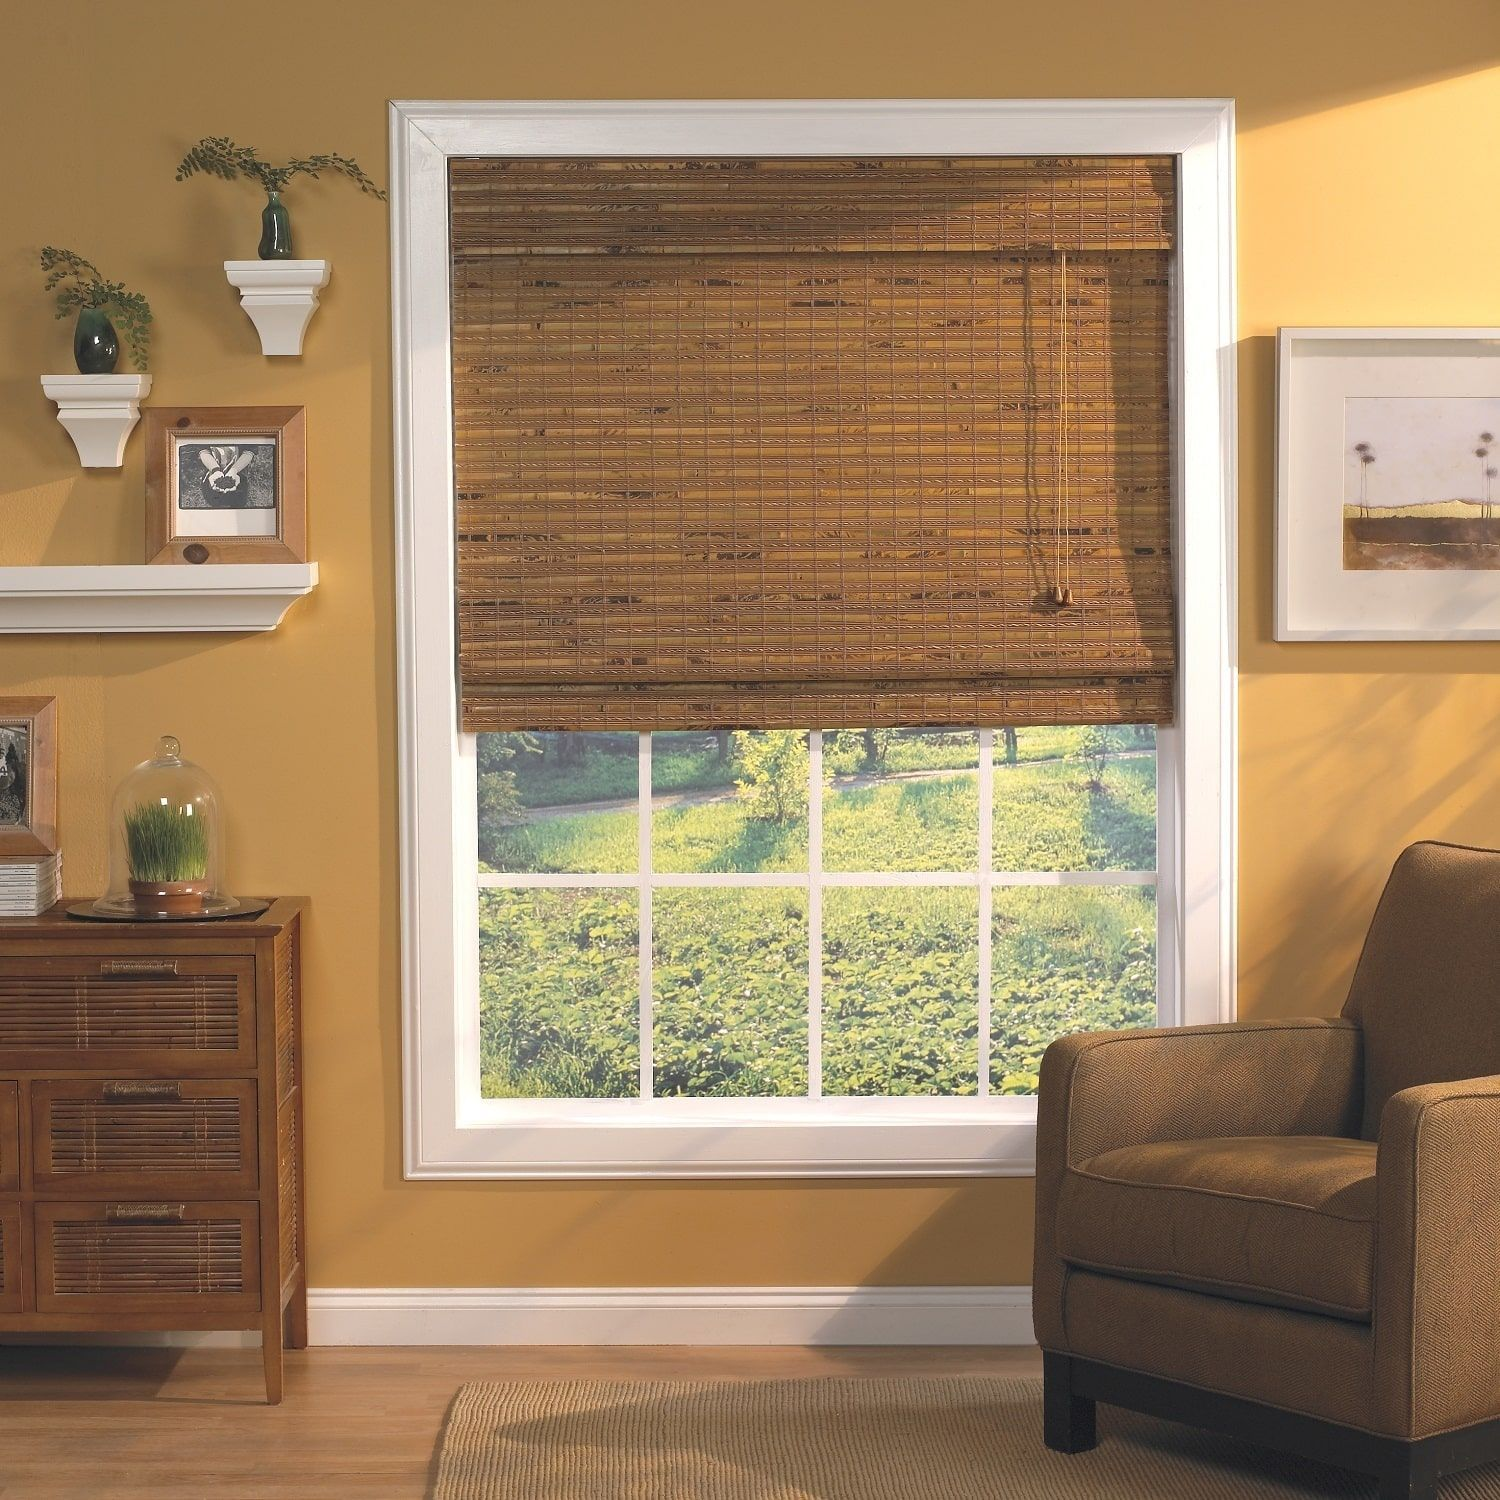 New window coverings 2018  radiance havana pecan woven wood bamboo roman shade  inches